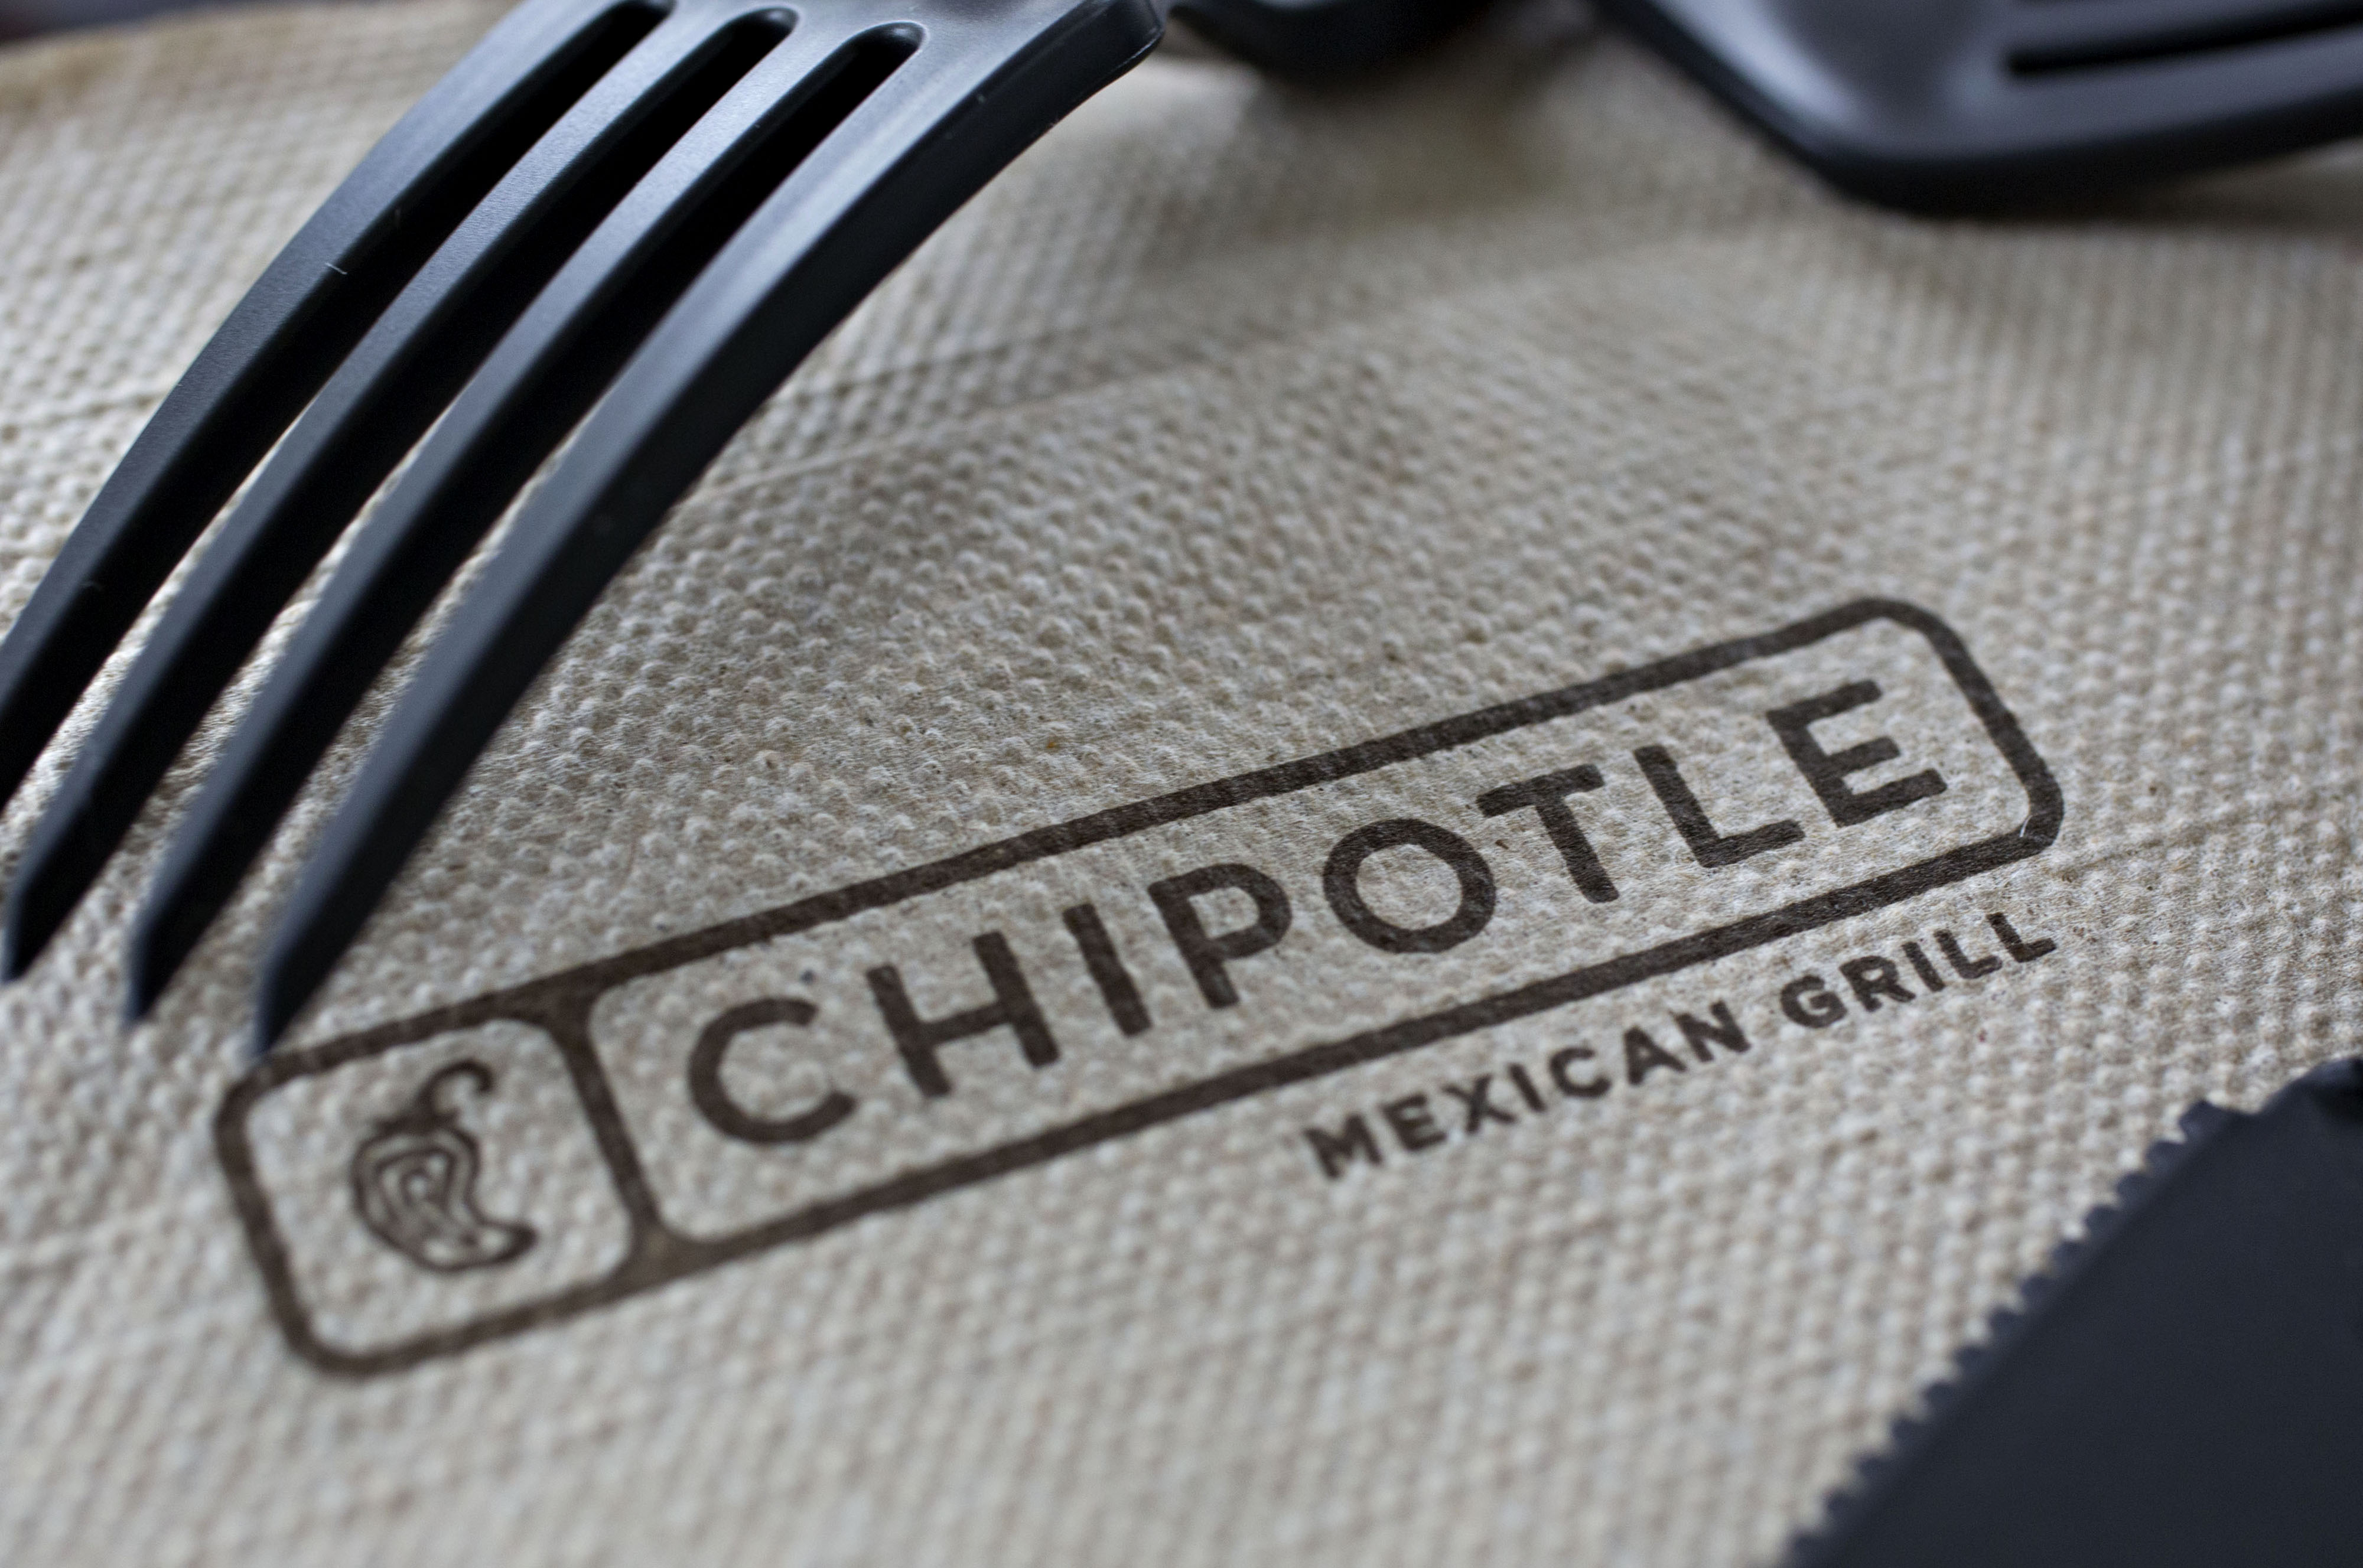 Chipotle Mexican Grill Inc. signage is seen on a napkin arranged for a photograph in Tiskilwa, Illinois, U.S., on Friday, April 22, 2016.